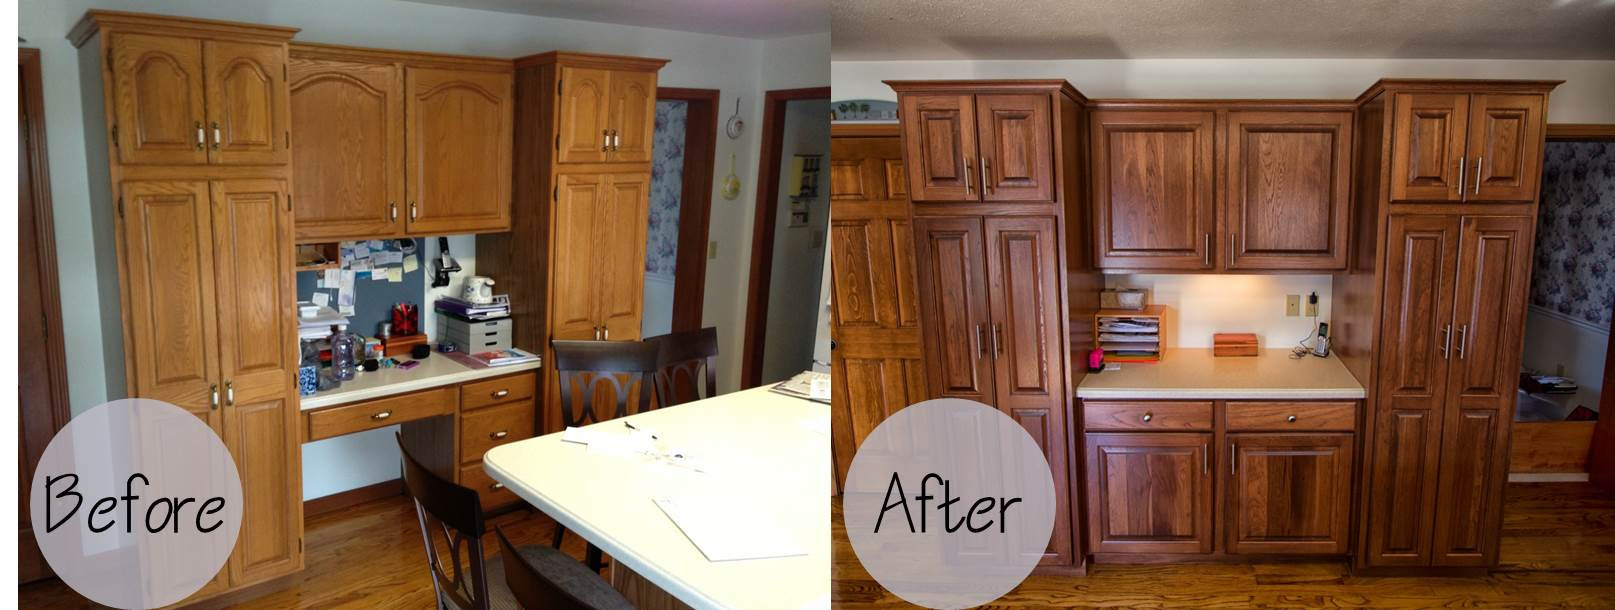 Cabinet Refacing Bucks County Pa Kitchen Cabinet Refacers Montgomery County Pa 215 757 2144 Wheeler Brothers Construction